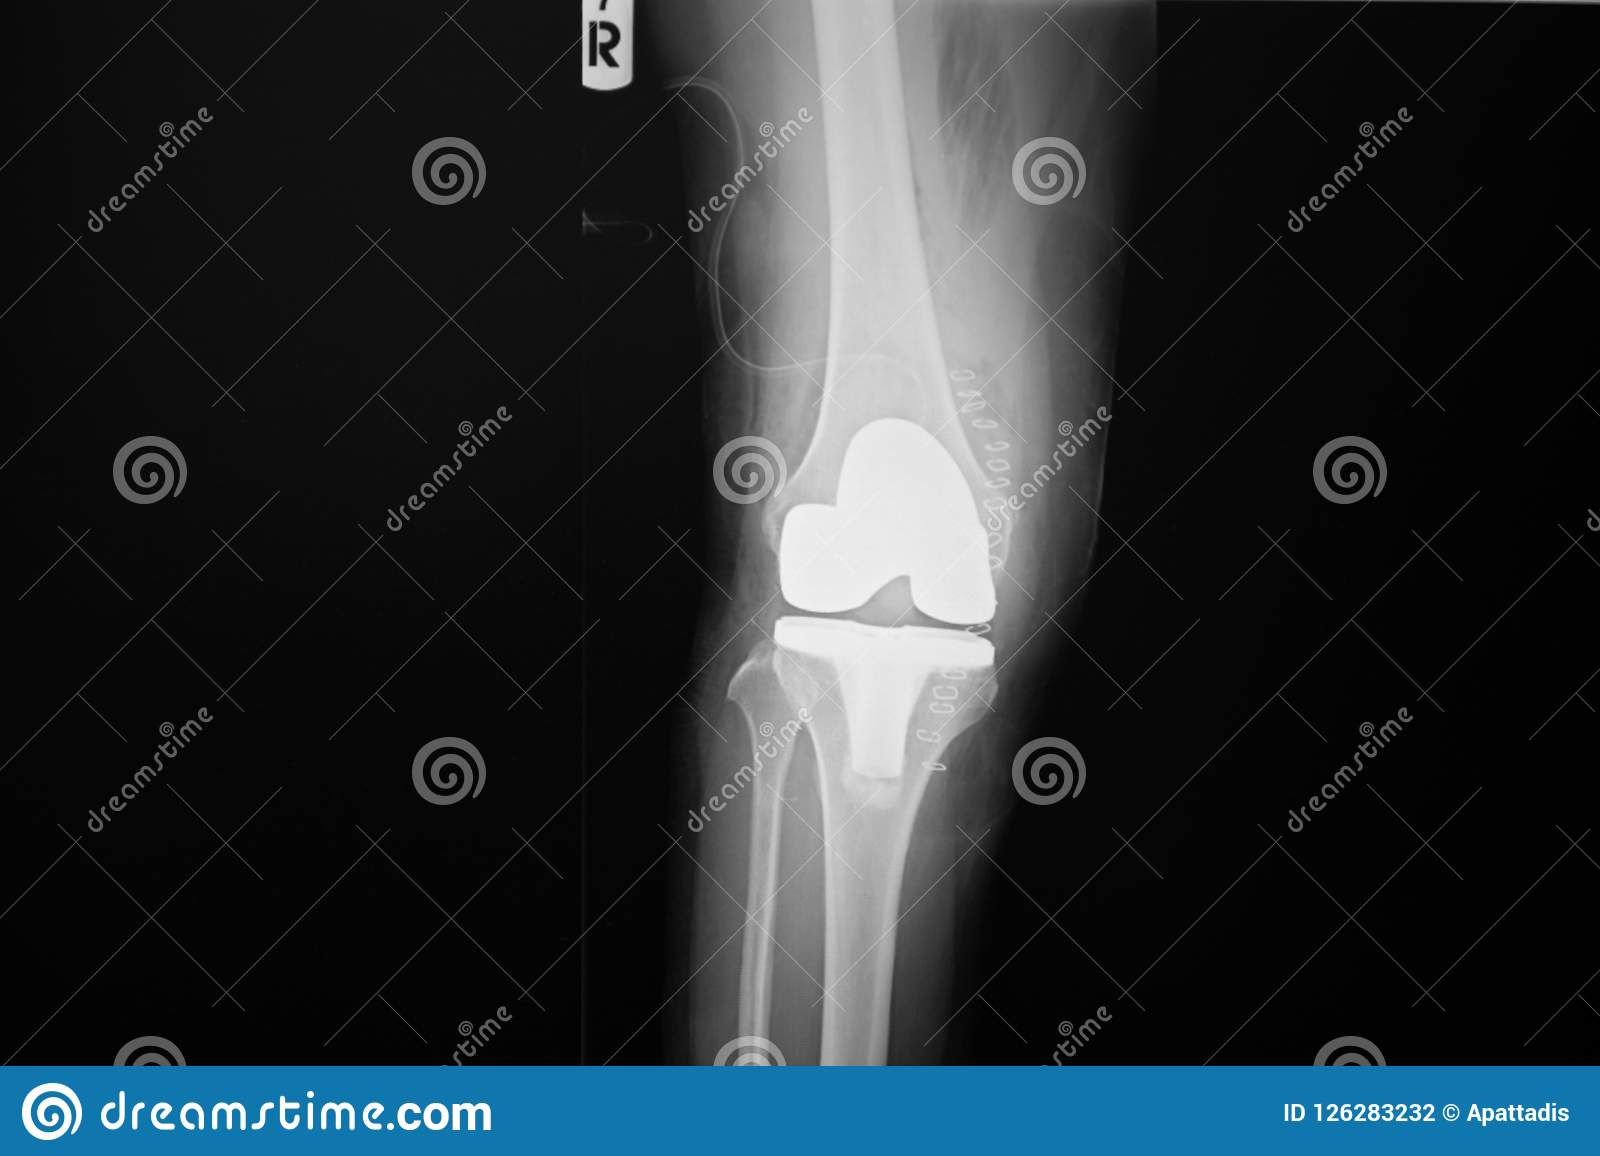 X Ray Image Of Lanteroposteriorright Knee Joint With Total Knee